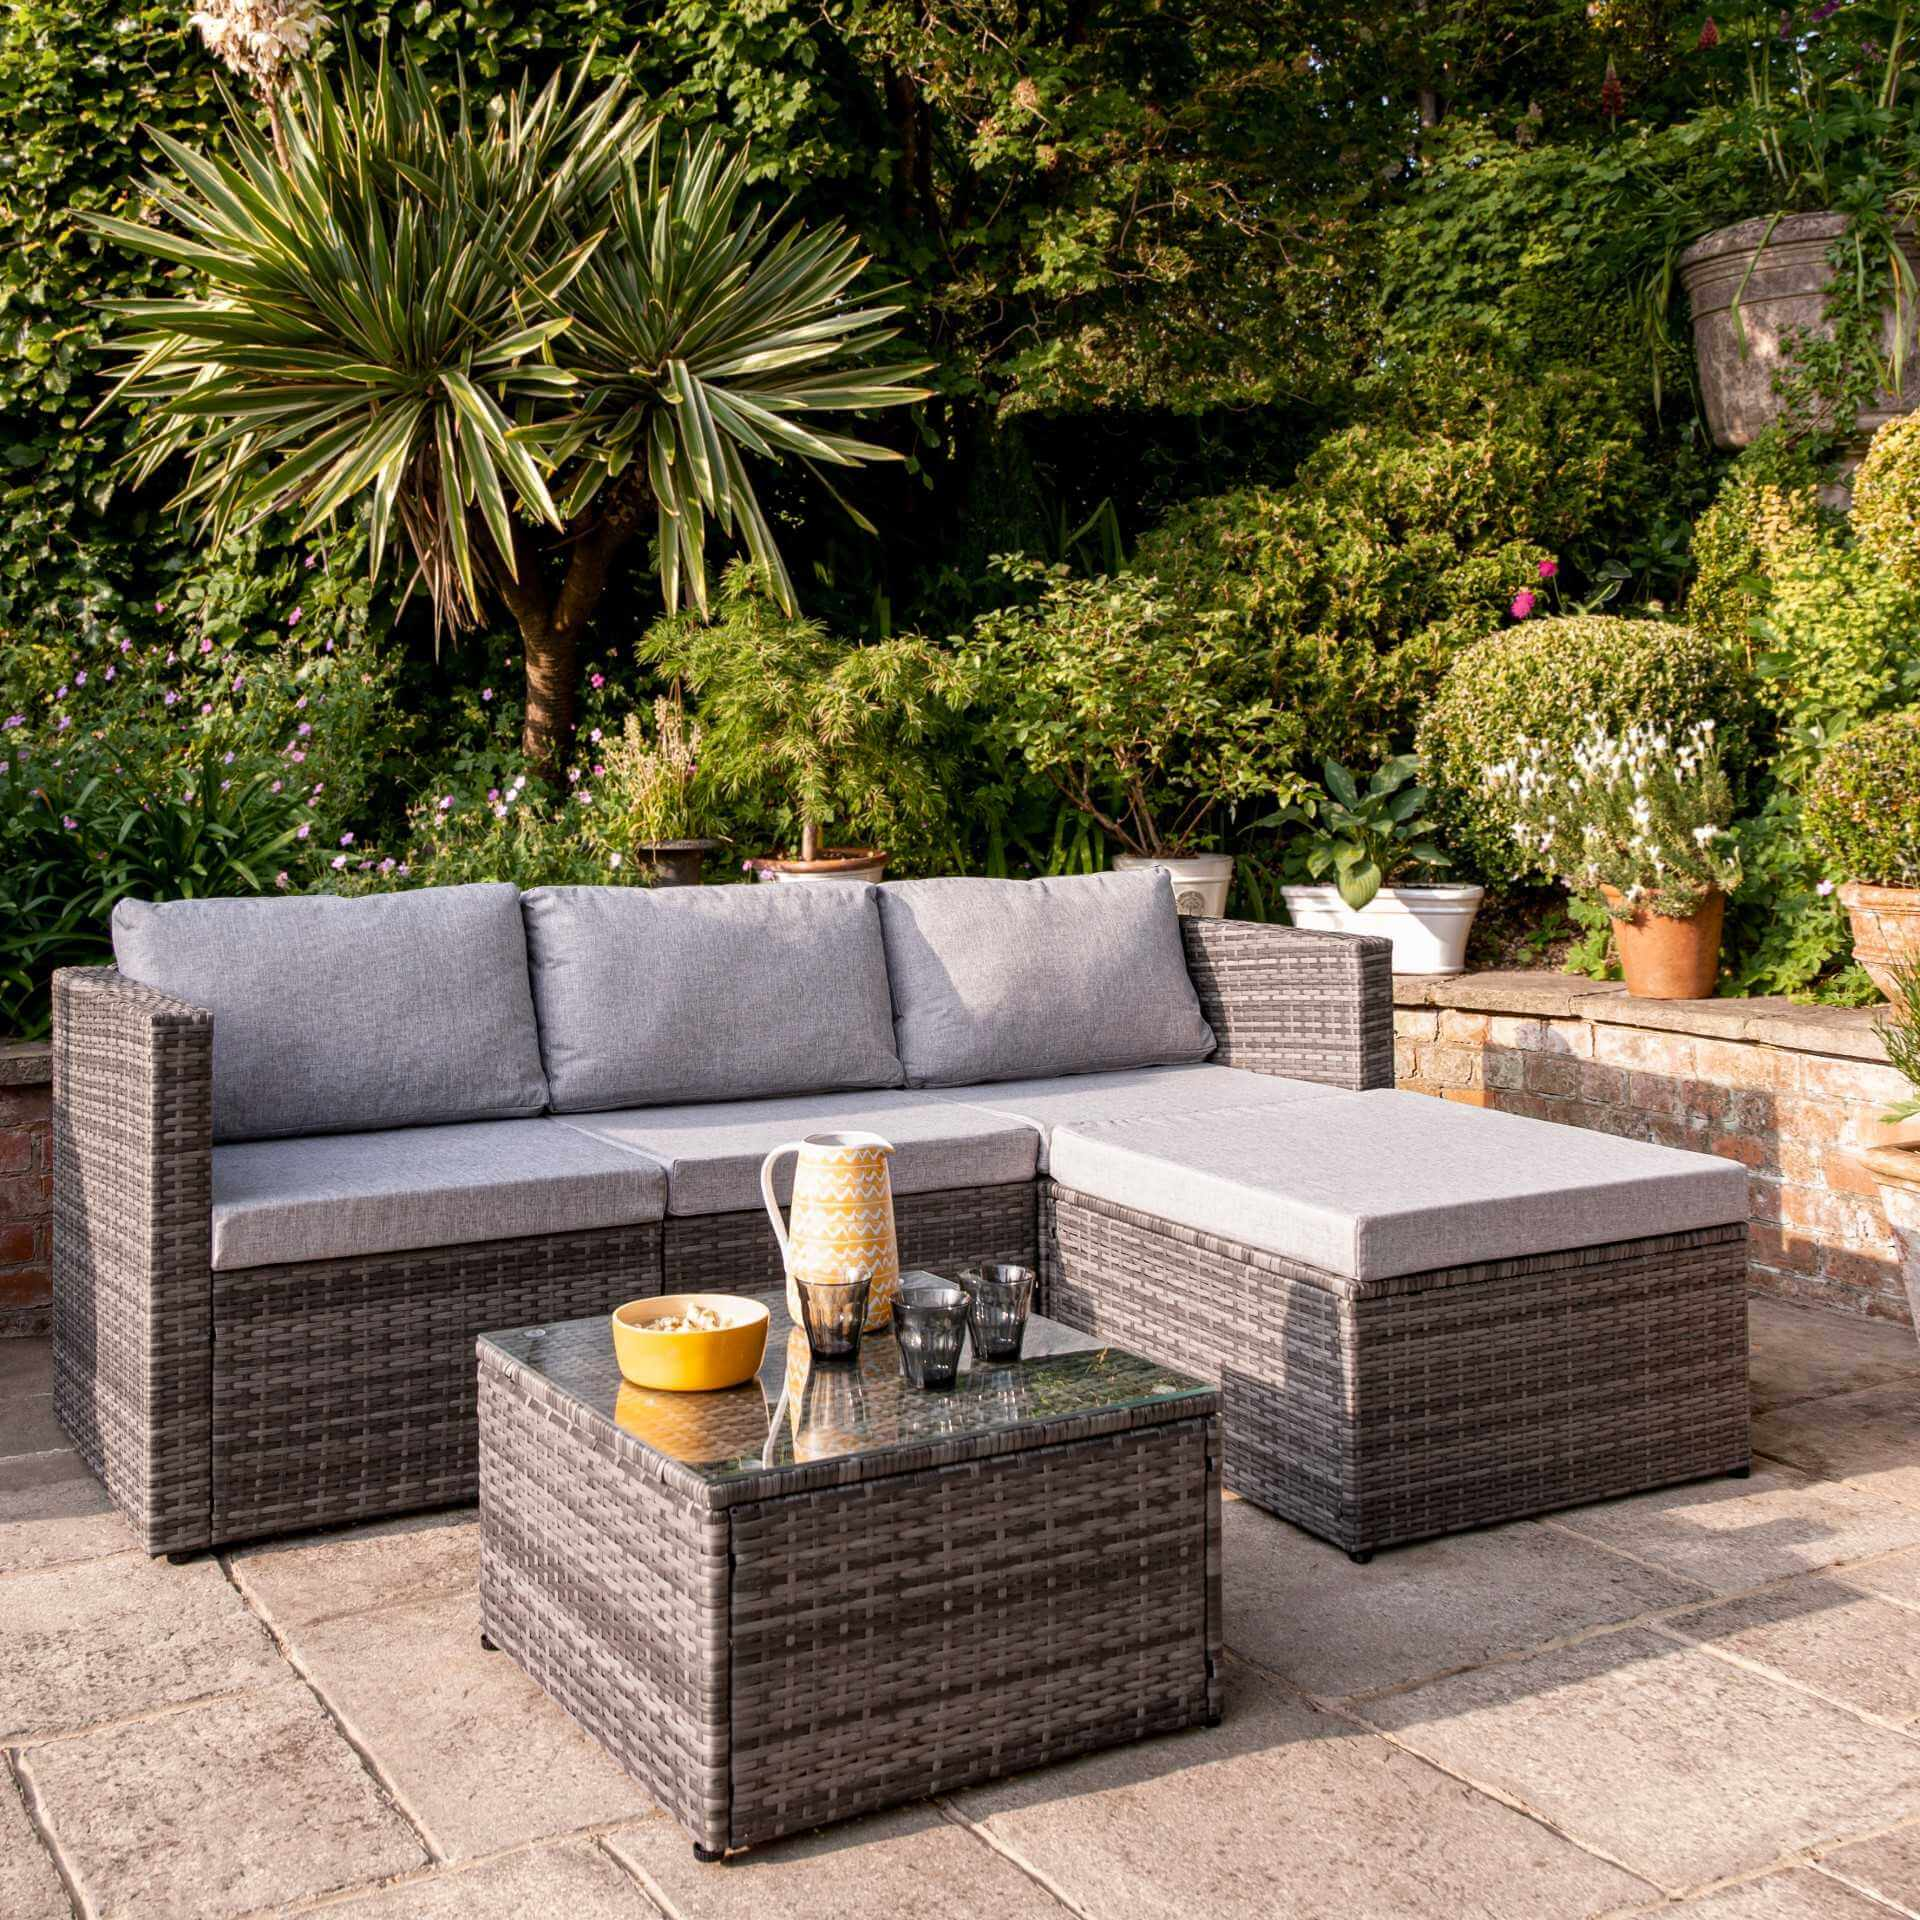 4 Seater Rattan Corner Sofa Set - Grey Weave - Laura James